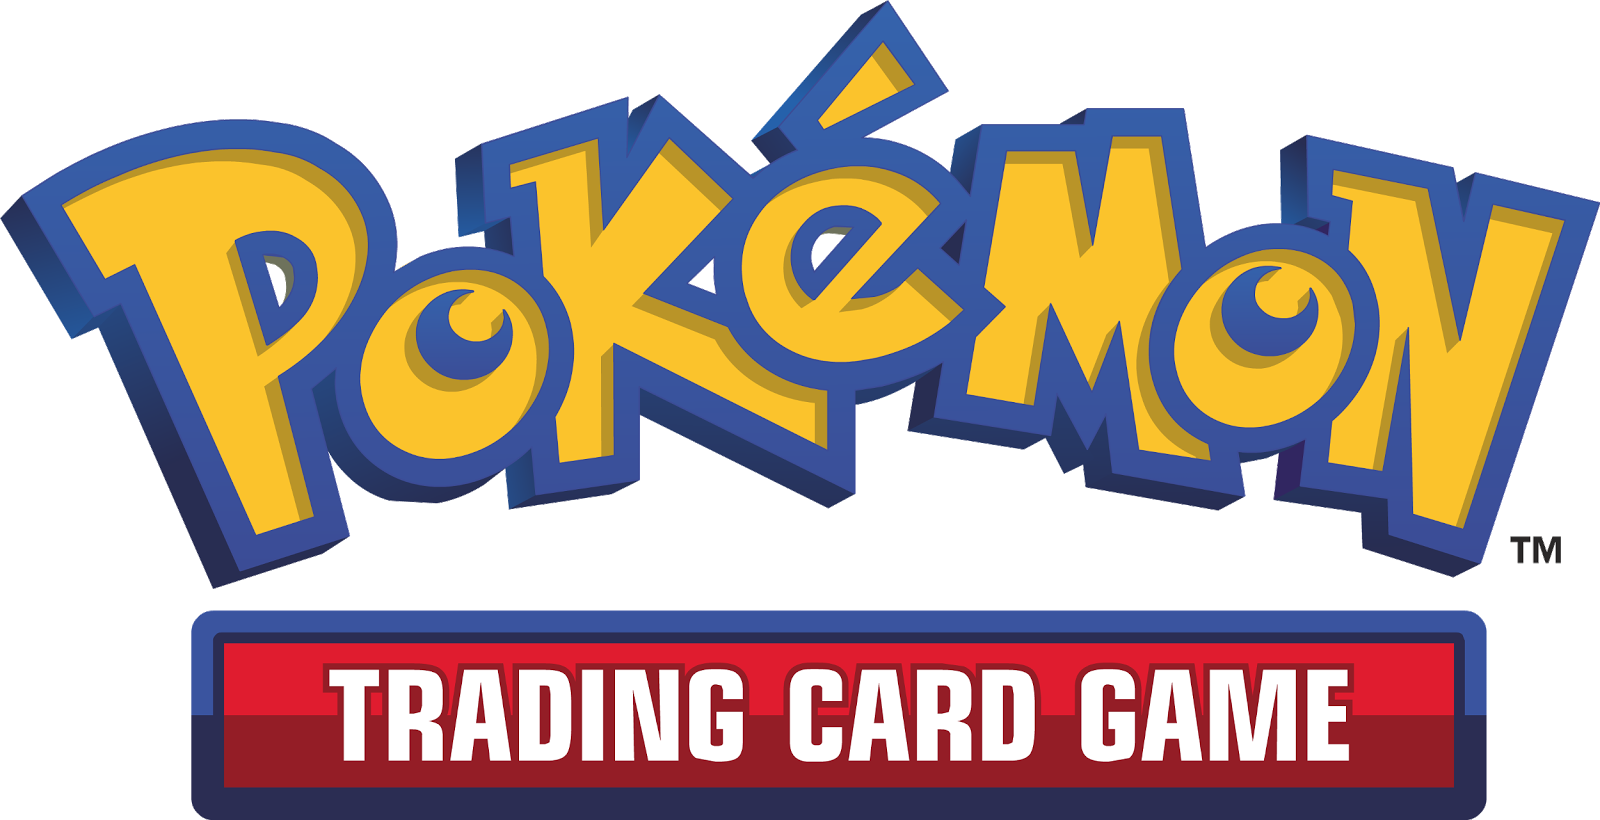 Pokemon trading card game online system requirements